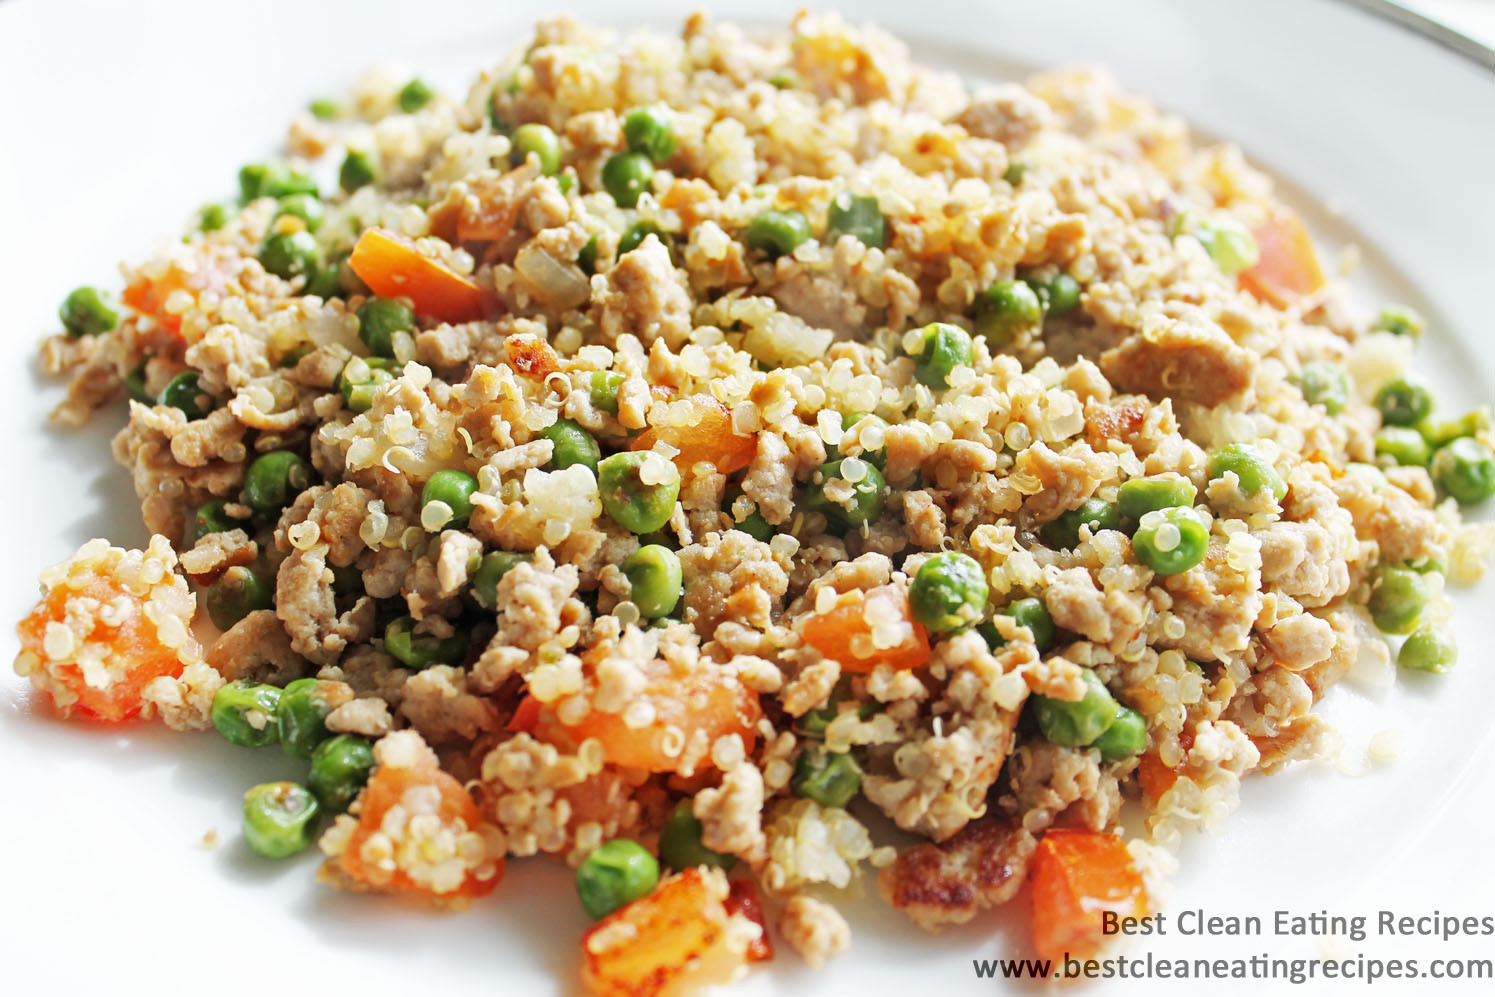 Recipes With Ground Turkey  Clean Eating Recipe – Ground Turkey and Quinoa Stir Fry